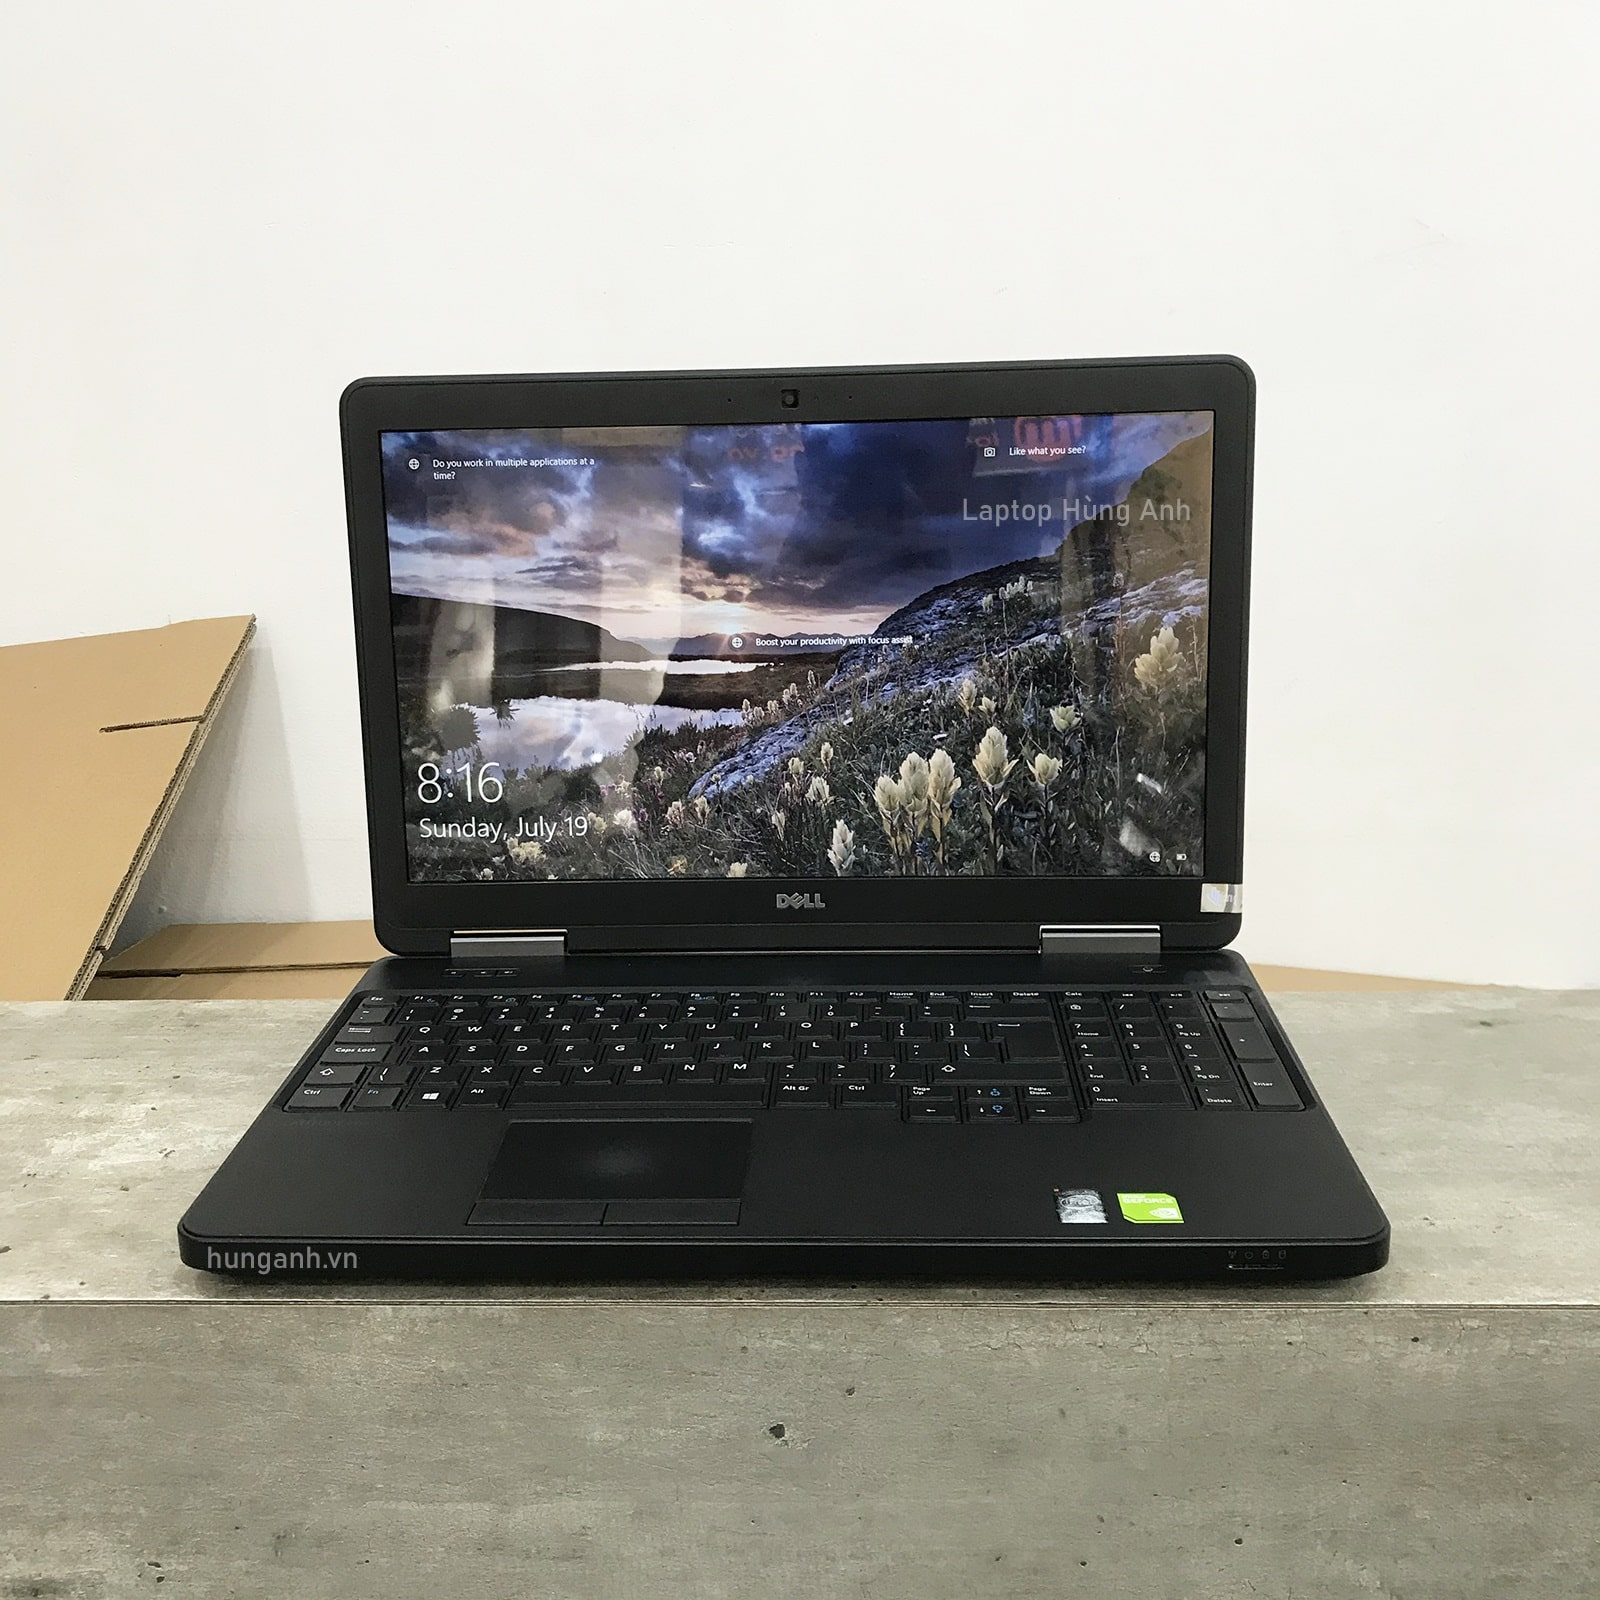 Dell Latitude E5540 Core i5 4300U, 4GB, 320GB, 15.6 inch, vga on rời